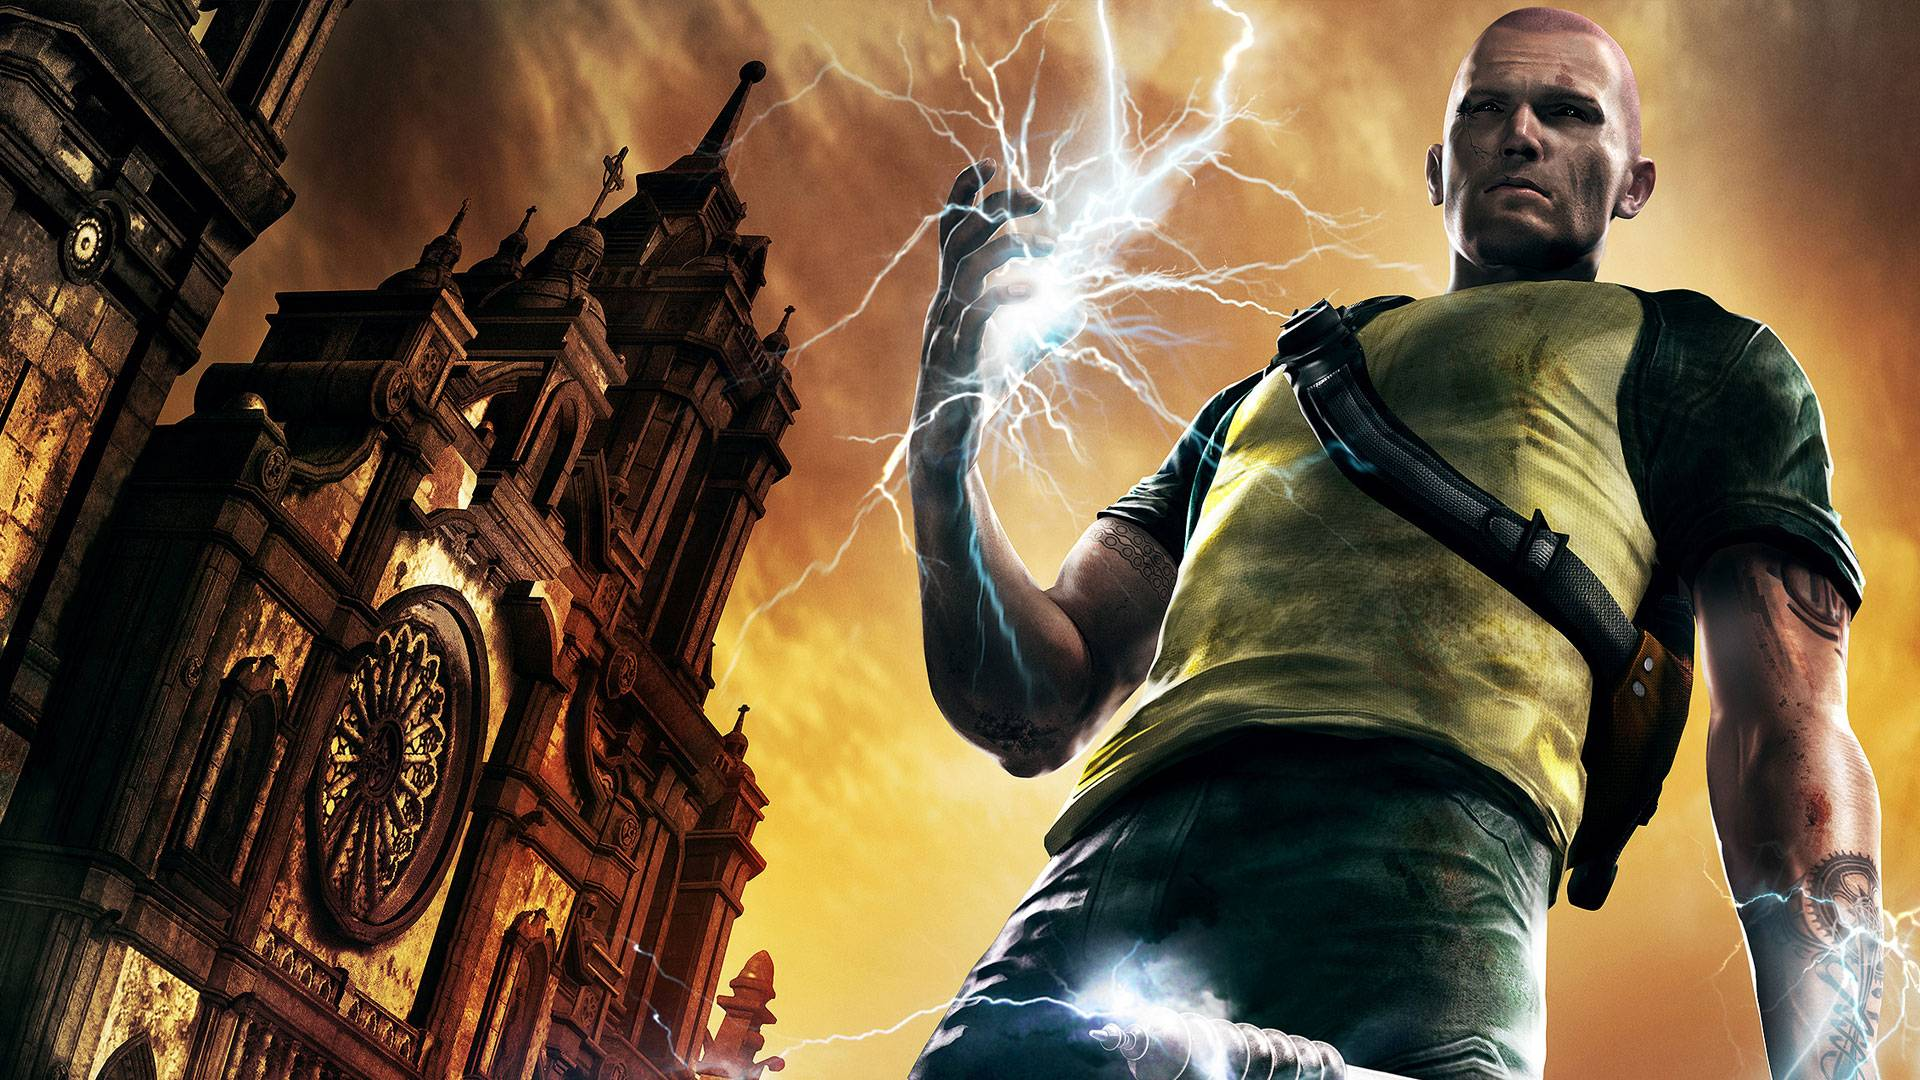 inFamous 2 Wallpapers in full 1080P HD « GamingBolt com: Video